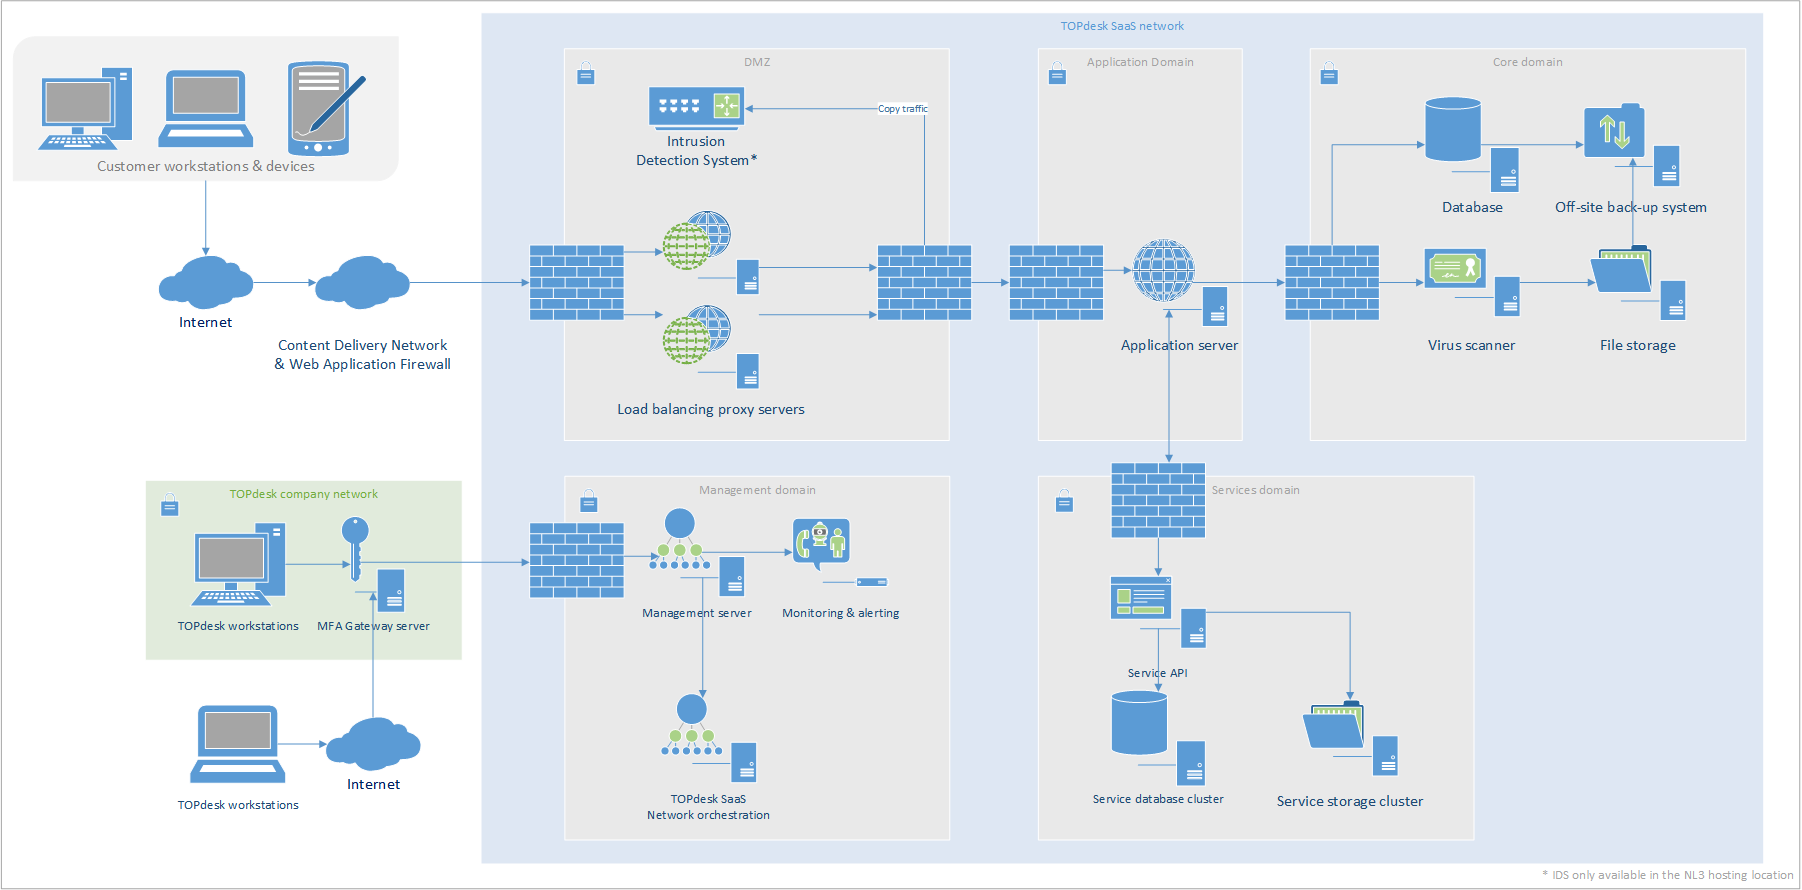 Network DMZ IDS and management 2019-12-18